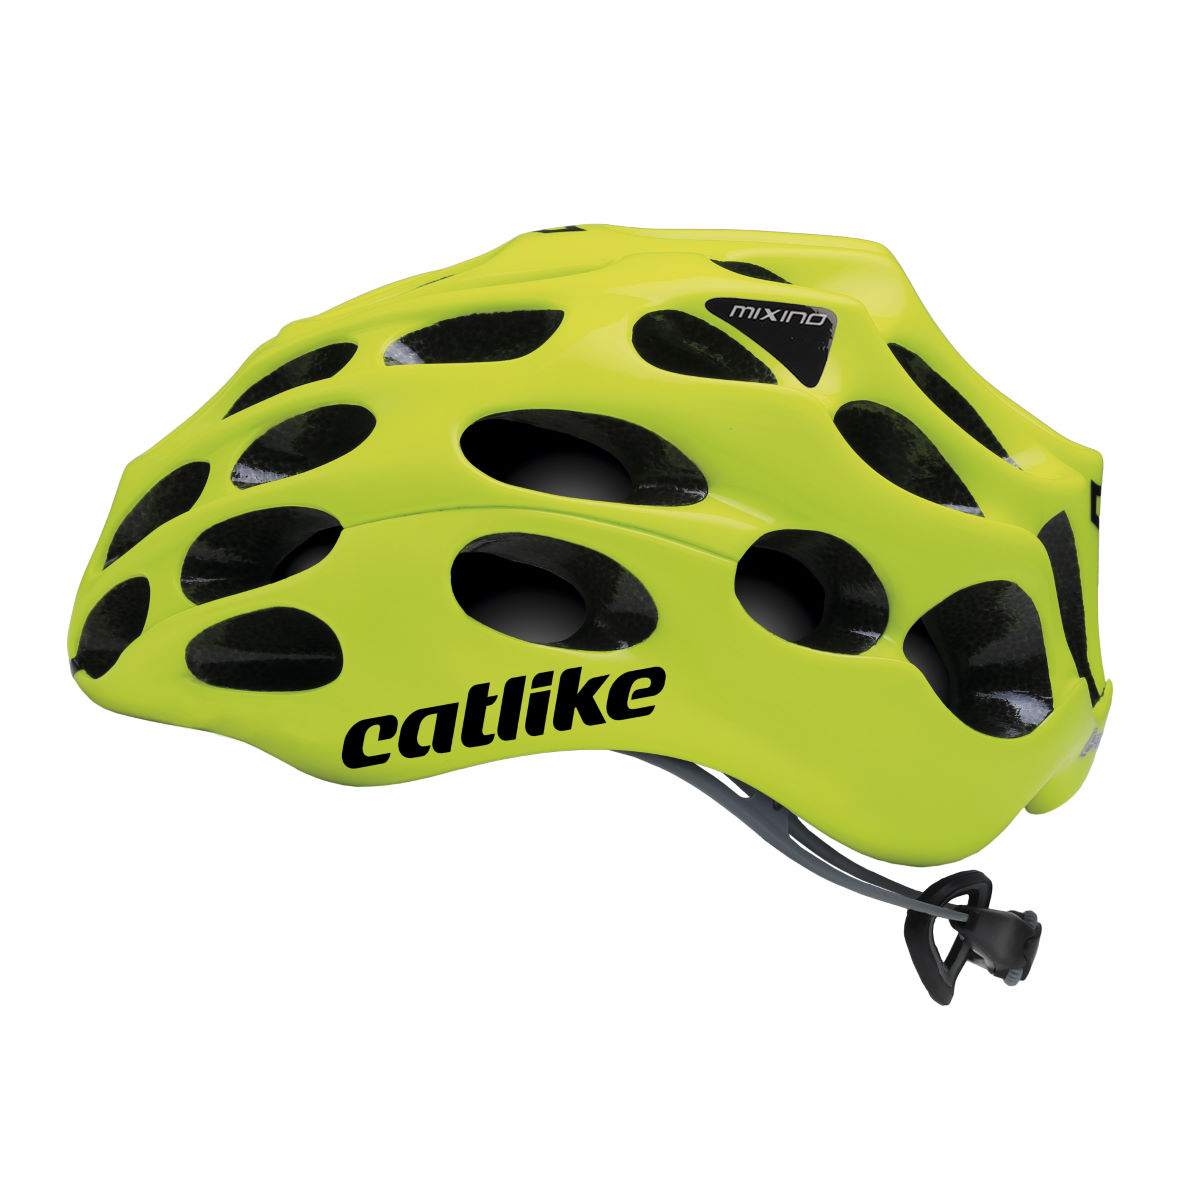 Casque de route Catlike Mixino - Large Fluro Yellow Casques de route